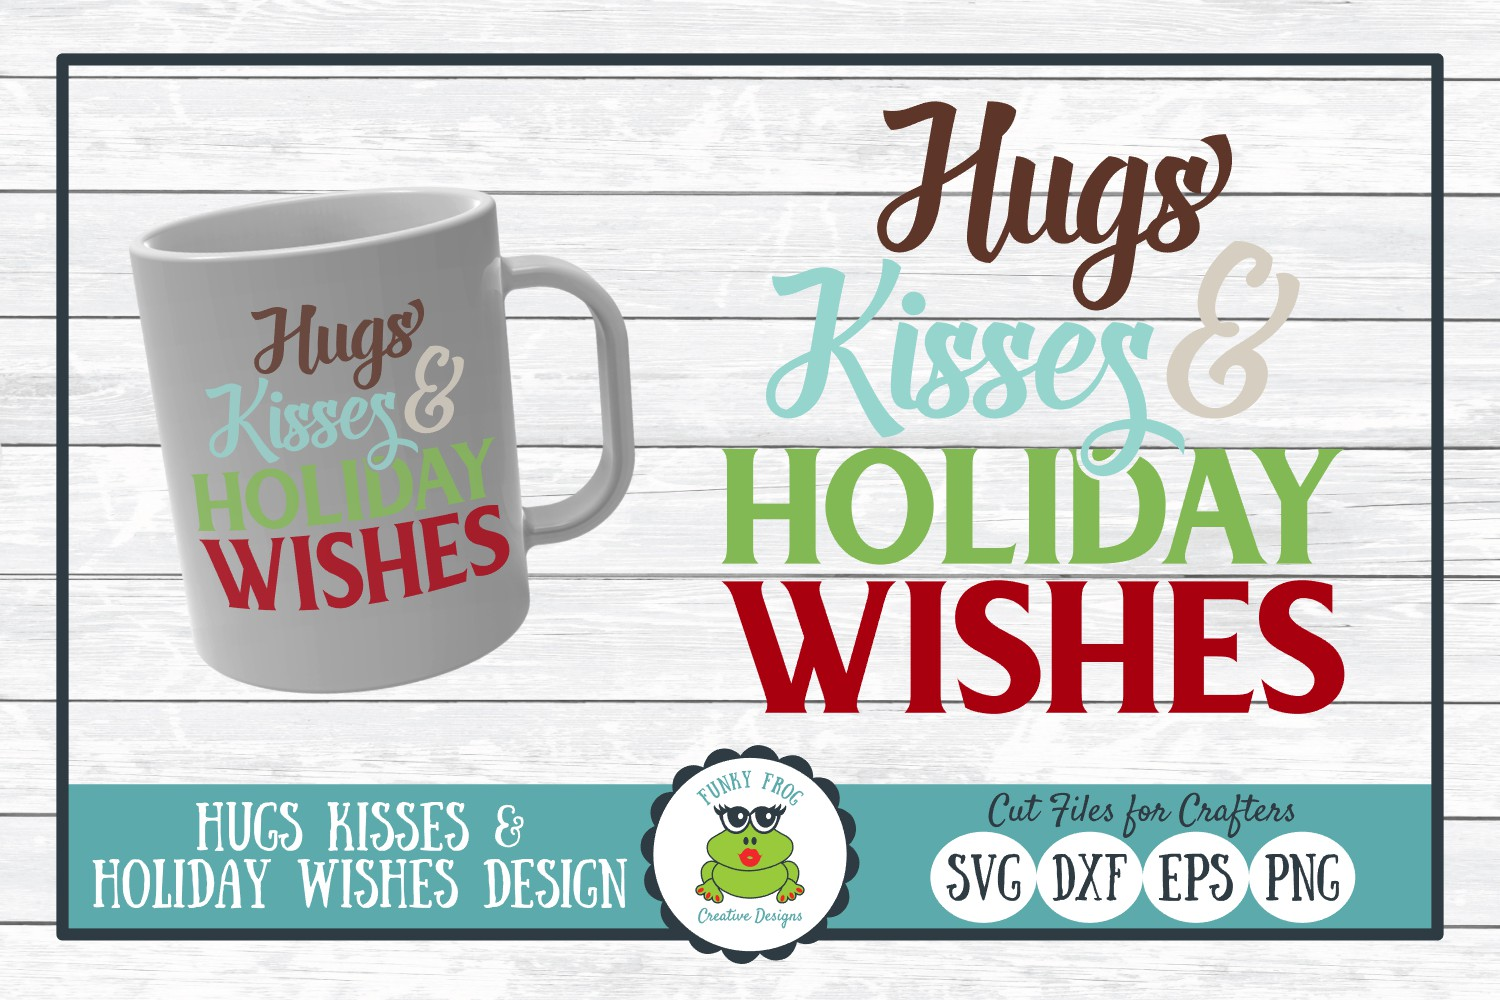 Hugs Kisses & Holiday Wishes, Winter Holiday SVG Cut File example image 1